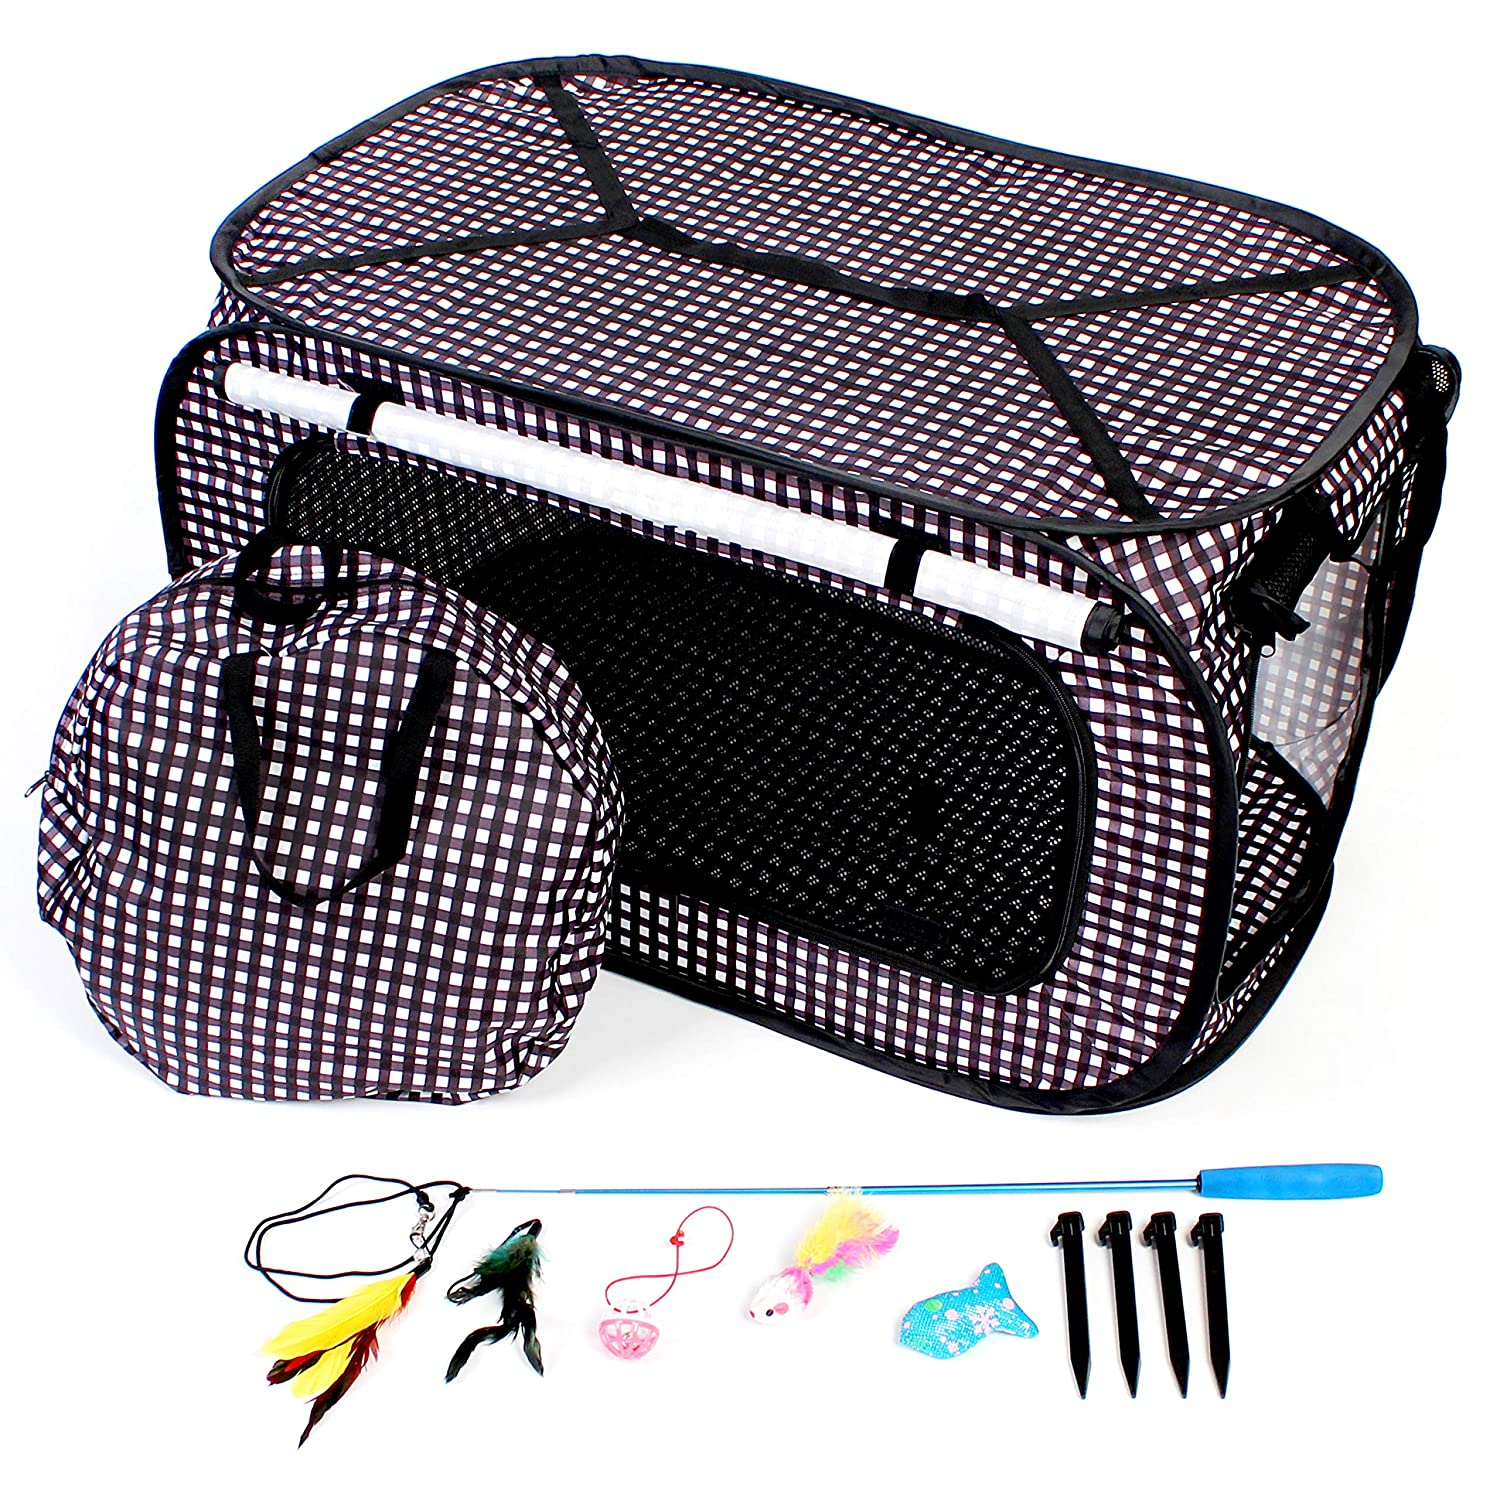 Checkerboard CHEERING PET Cat Cage Extra Large Collapsible Portable Cat Cage Condo Car Box, Checkerboard Design Great for Cross Country Trips, Includes Extra Activities 32 x 19 x 19